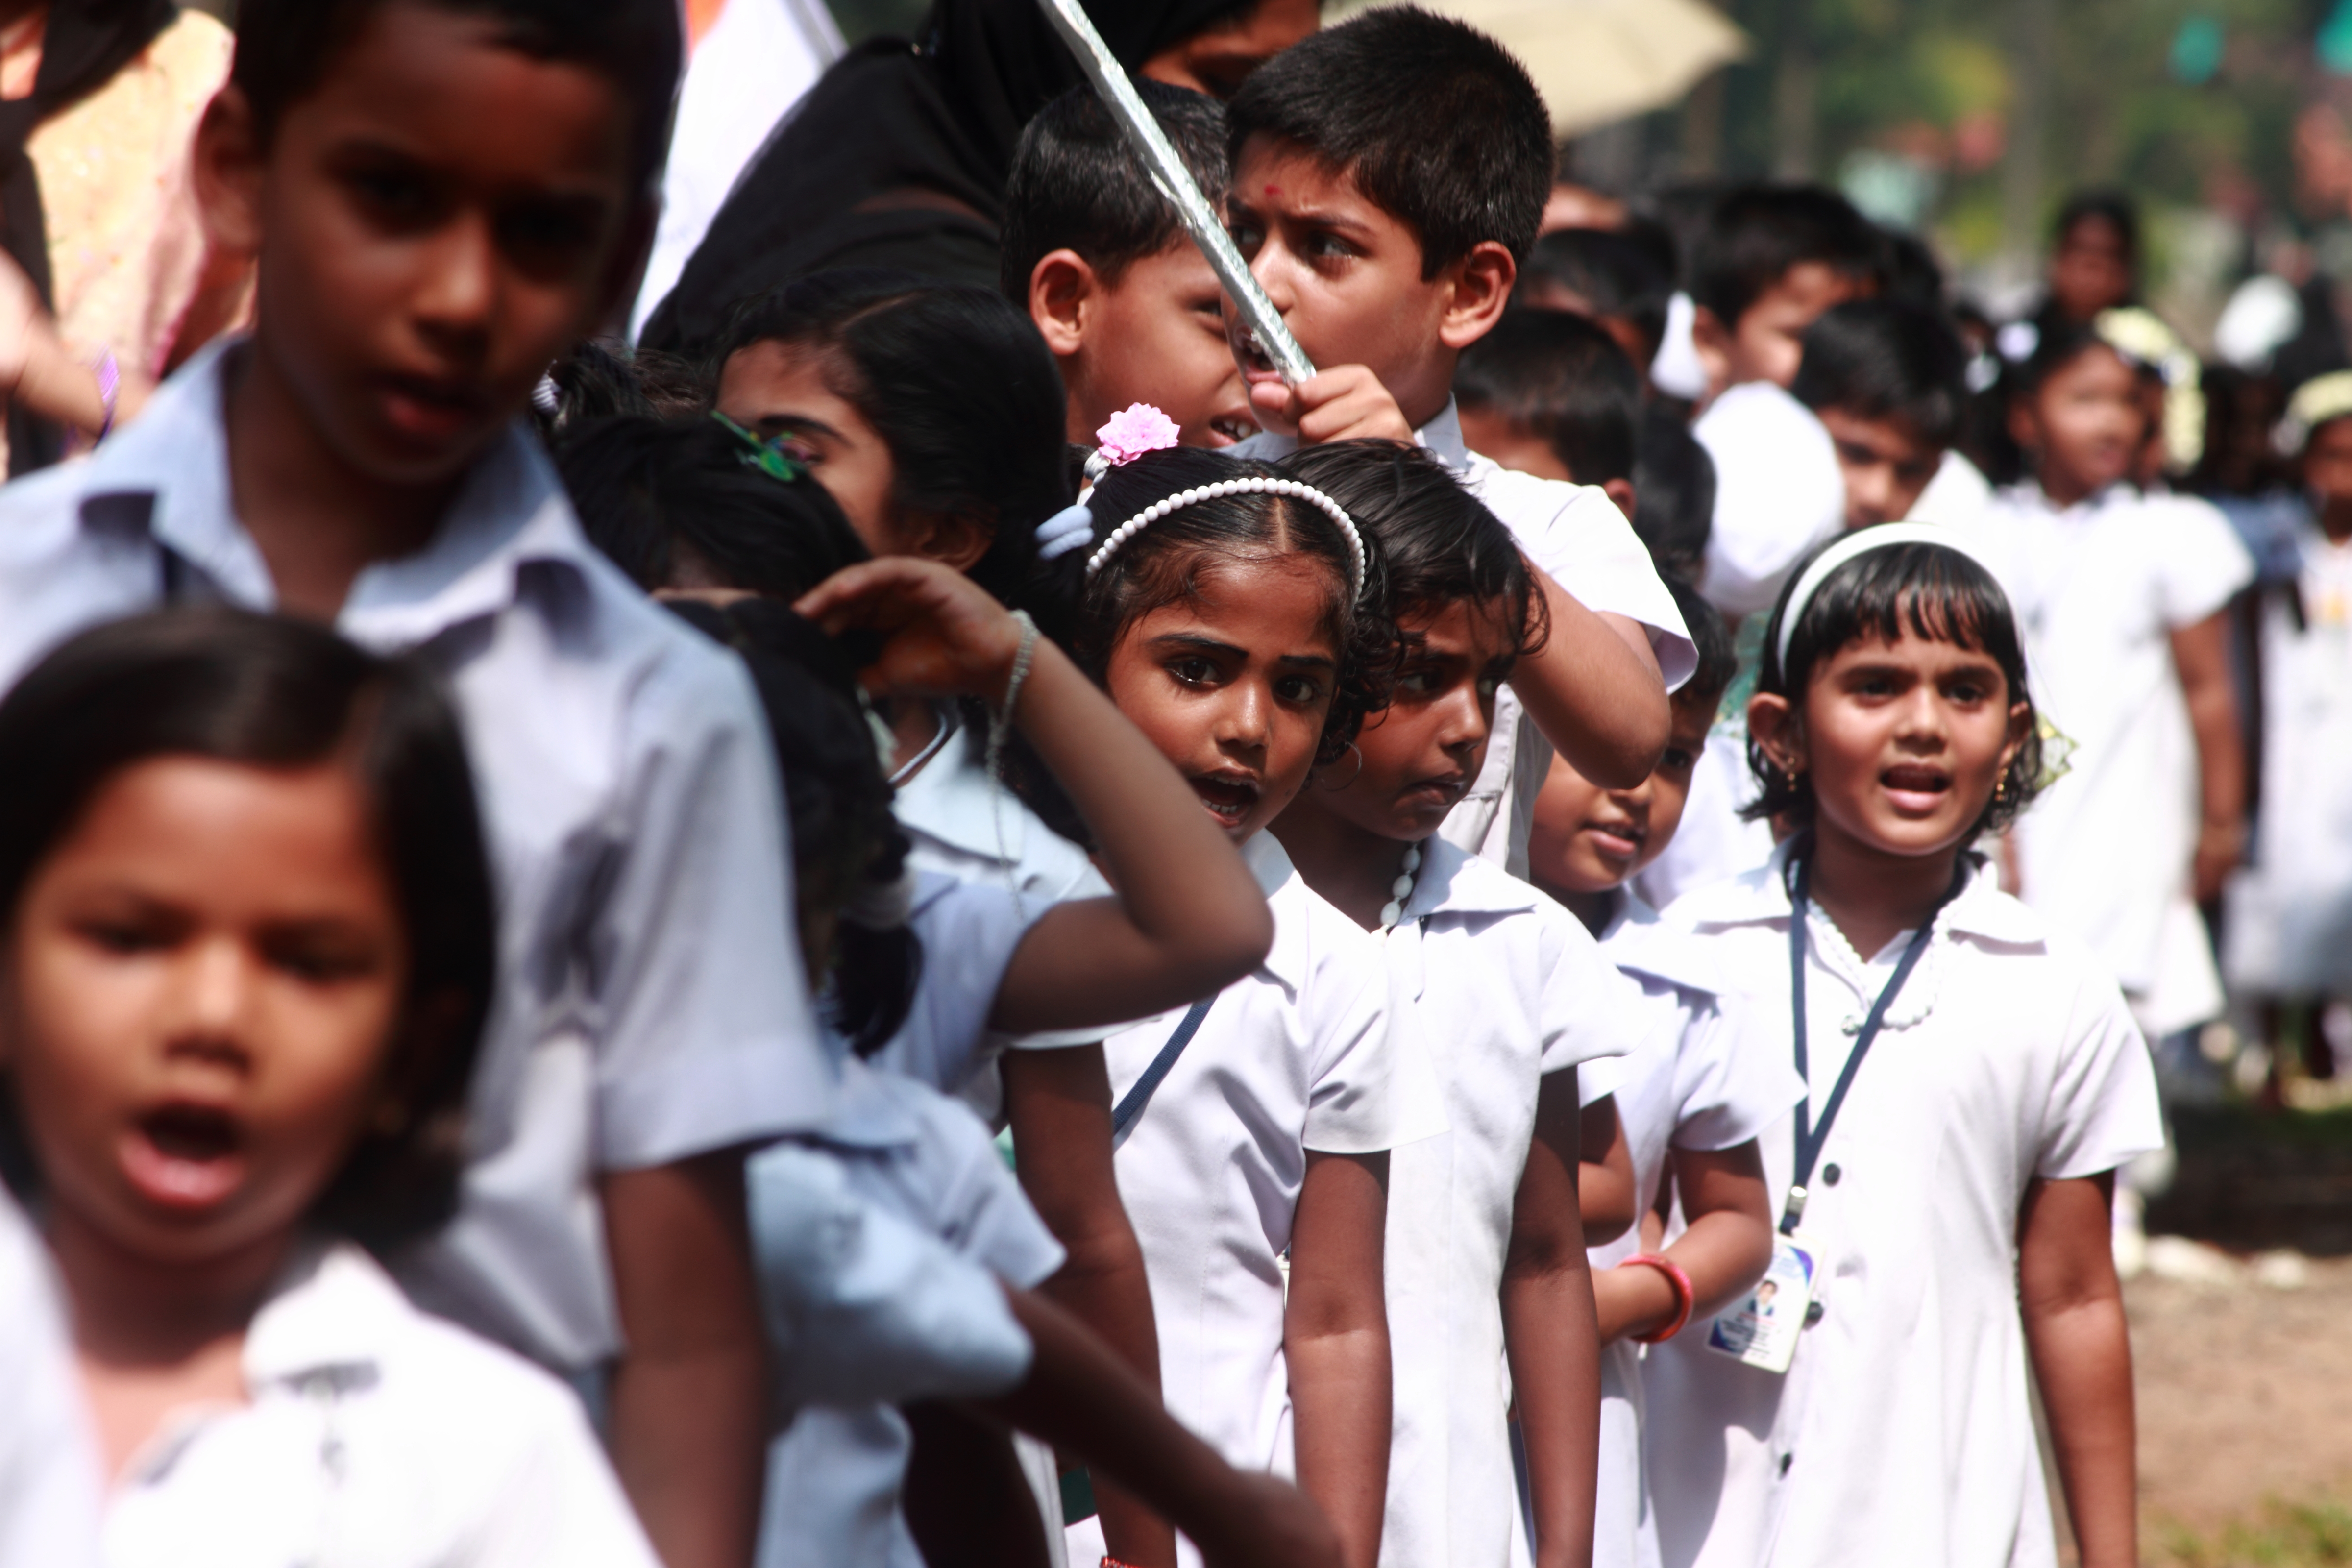 The India Child Well-Being report has been made by World Vision India, a humanitarian organisation, and IFMR LEAD, a non-profit research organisation.